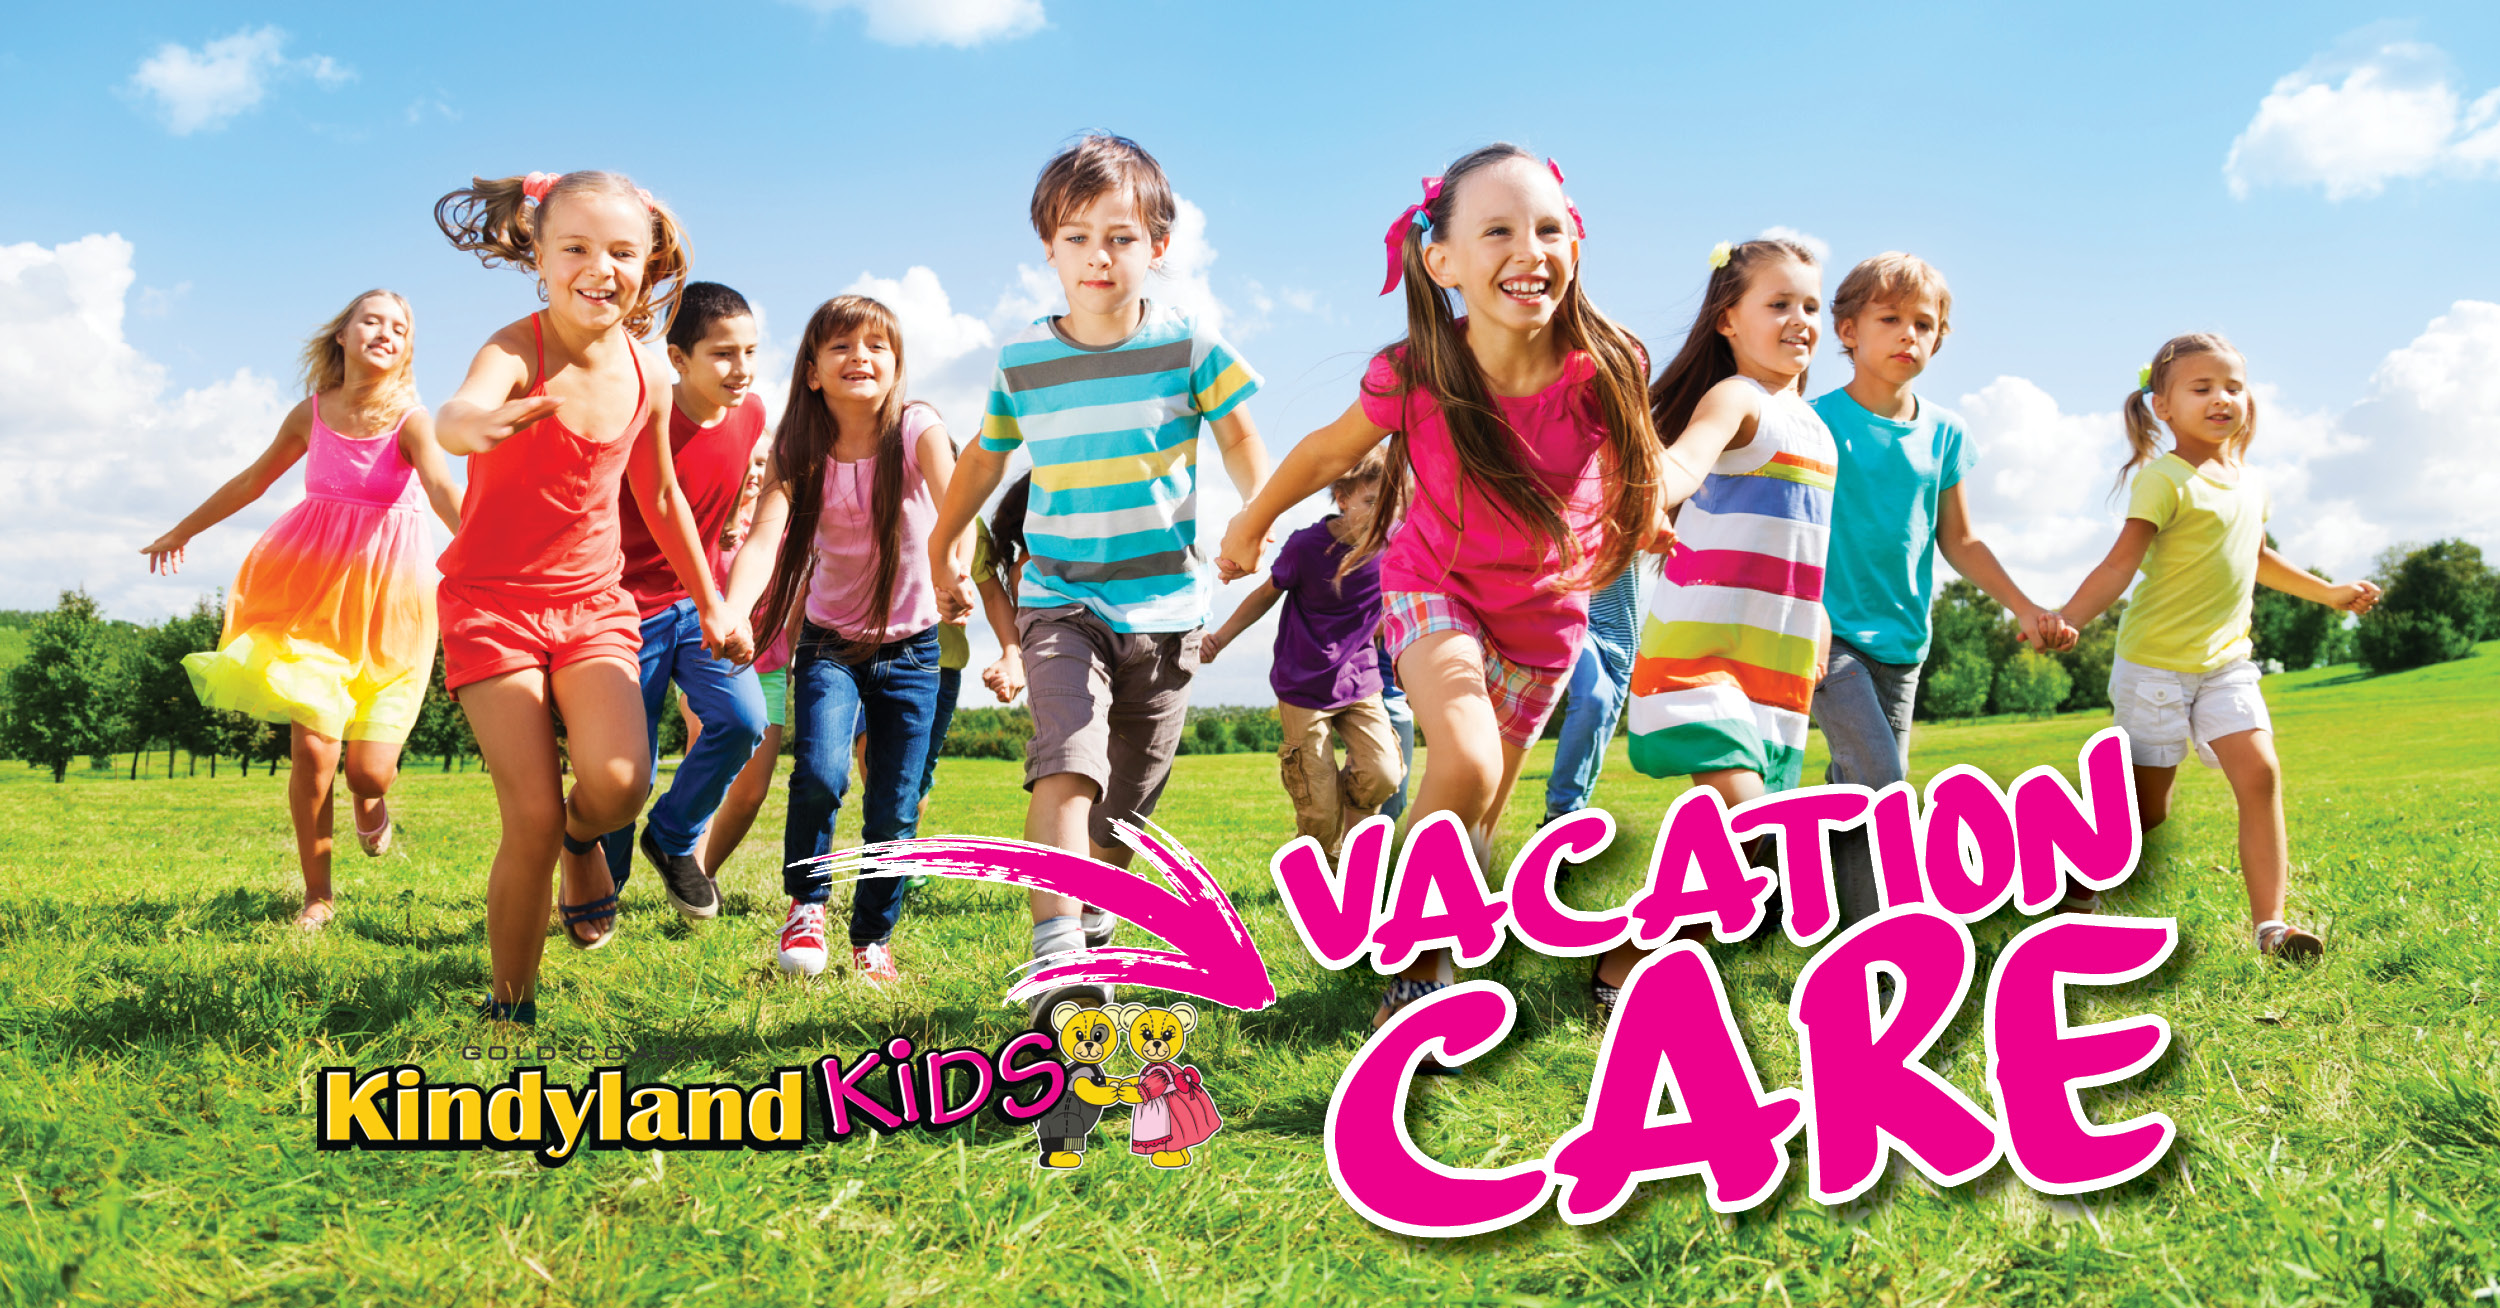 Vacation Care April 2019 - Ad tile